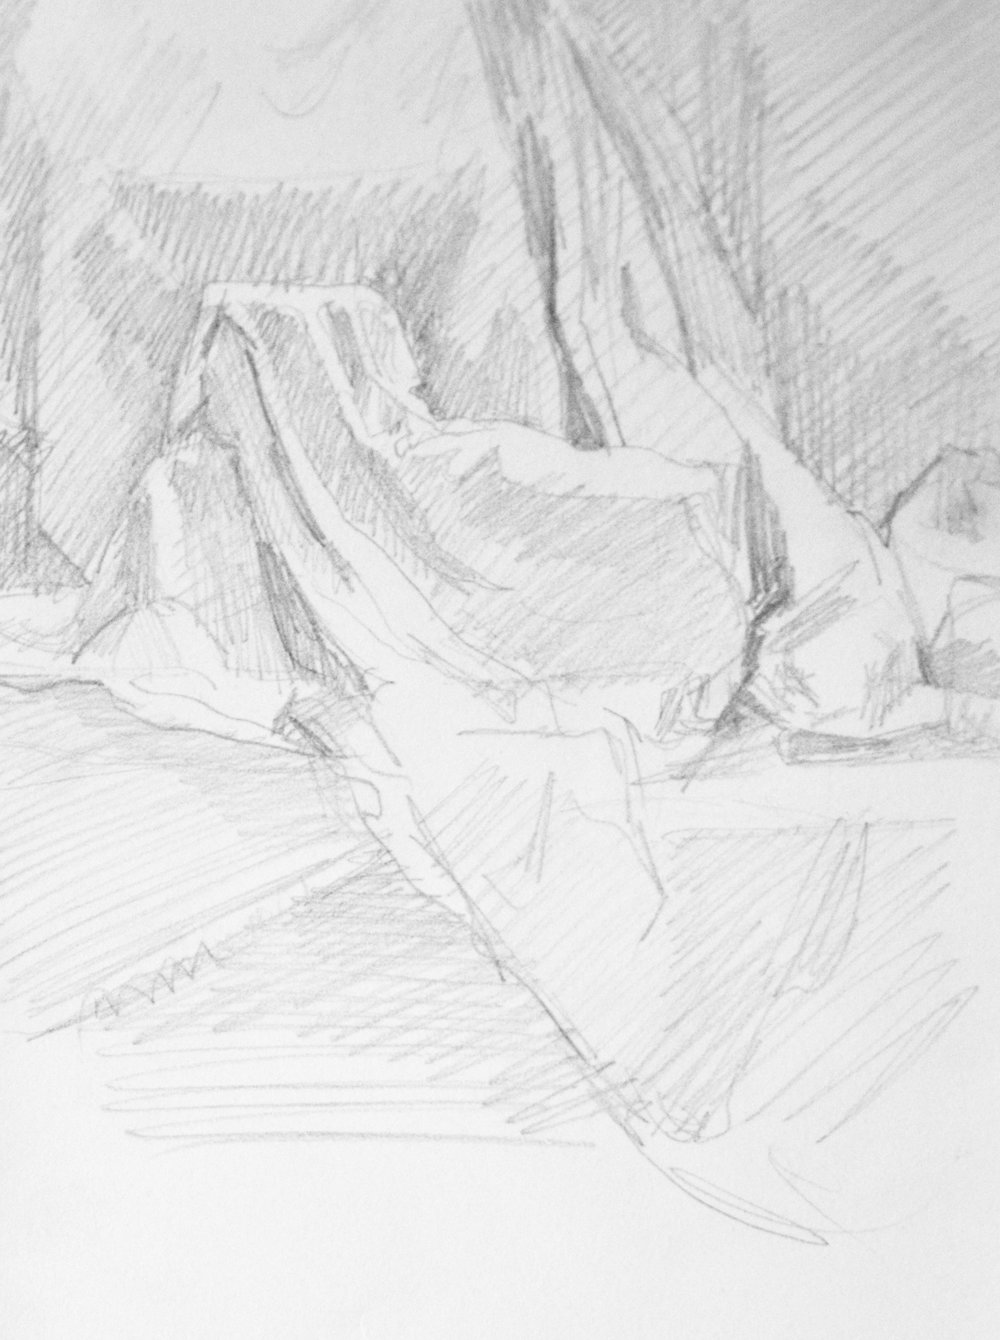 Drapery Study,   2017  Graphite on paper